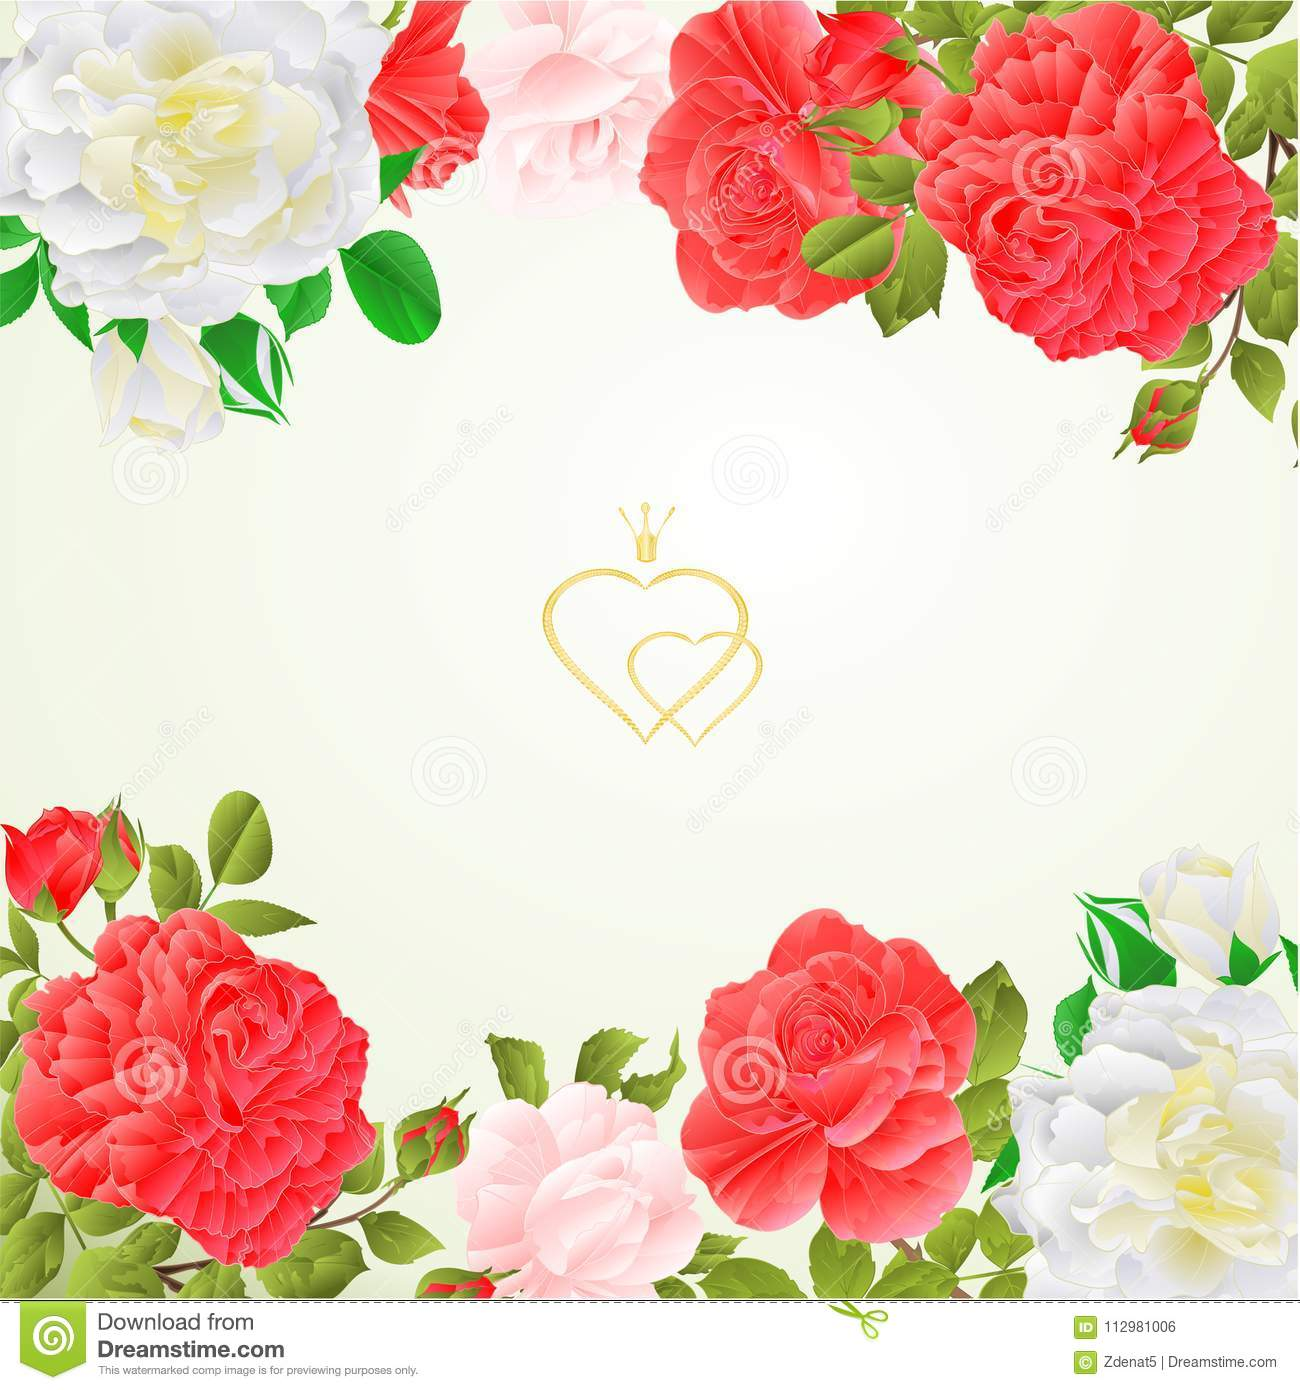 Floral border festive background with blooming roses and buds vintage vector Illustration for use in interior design